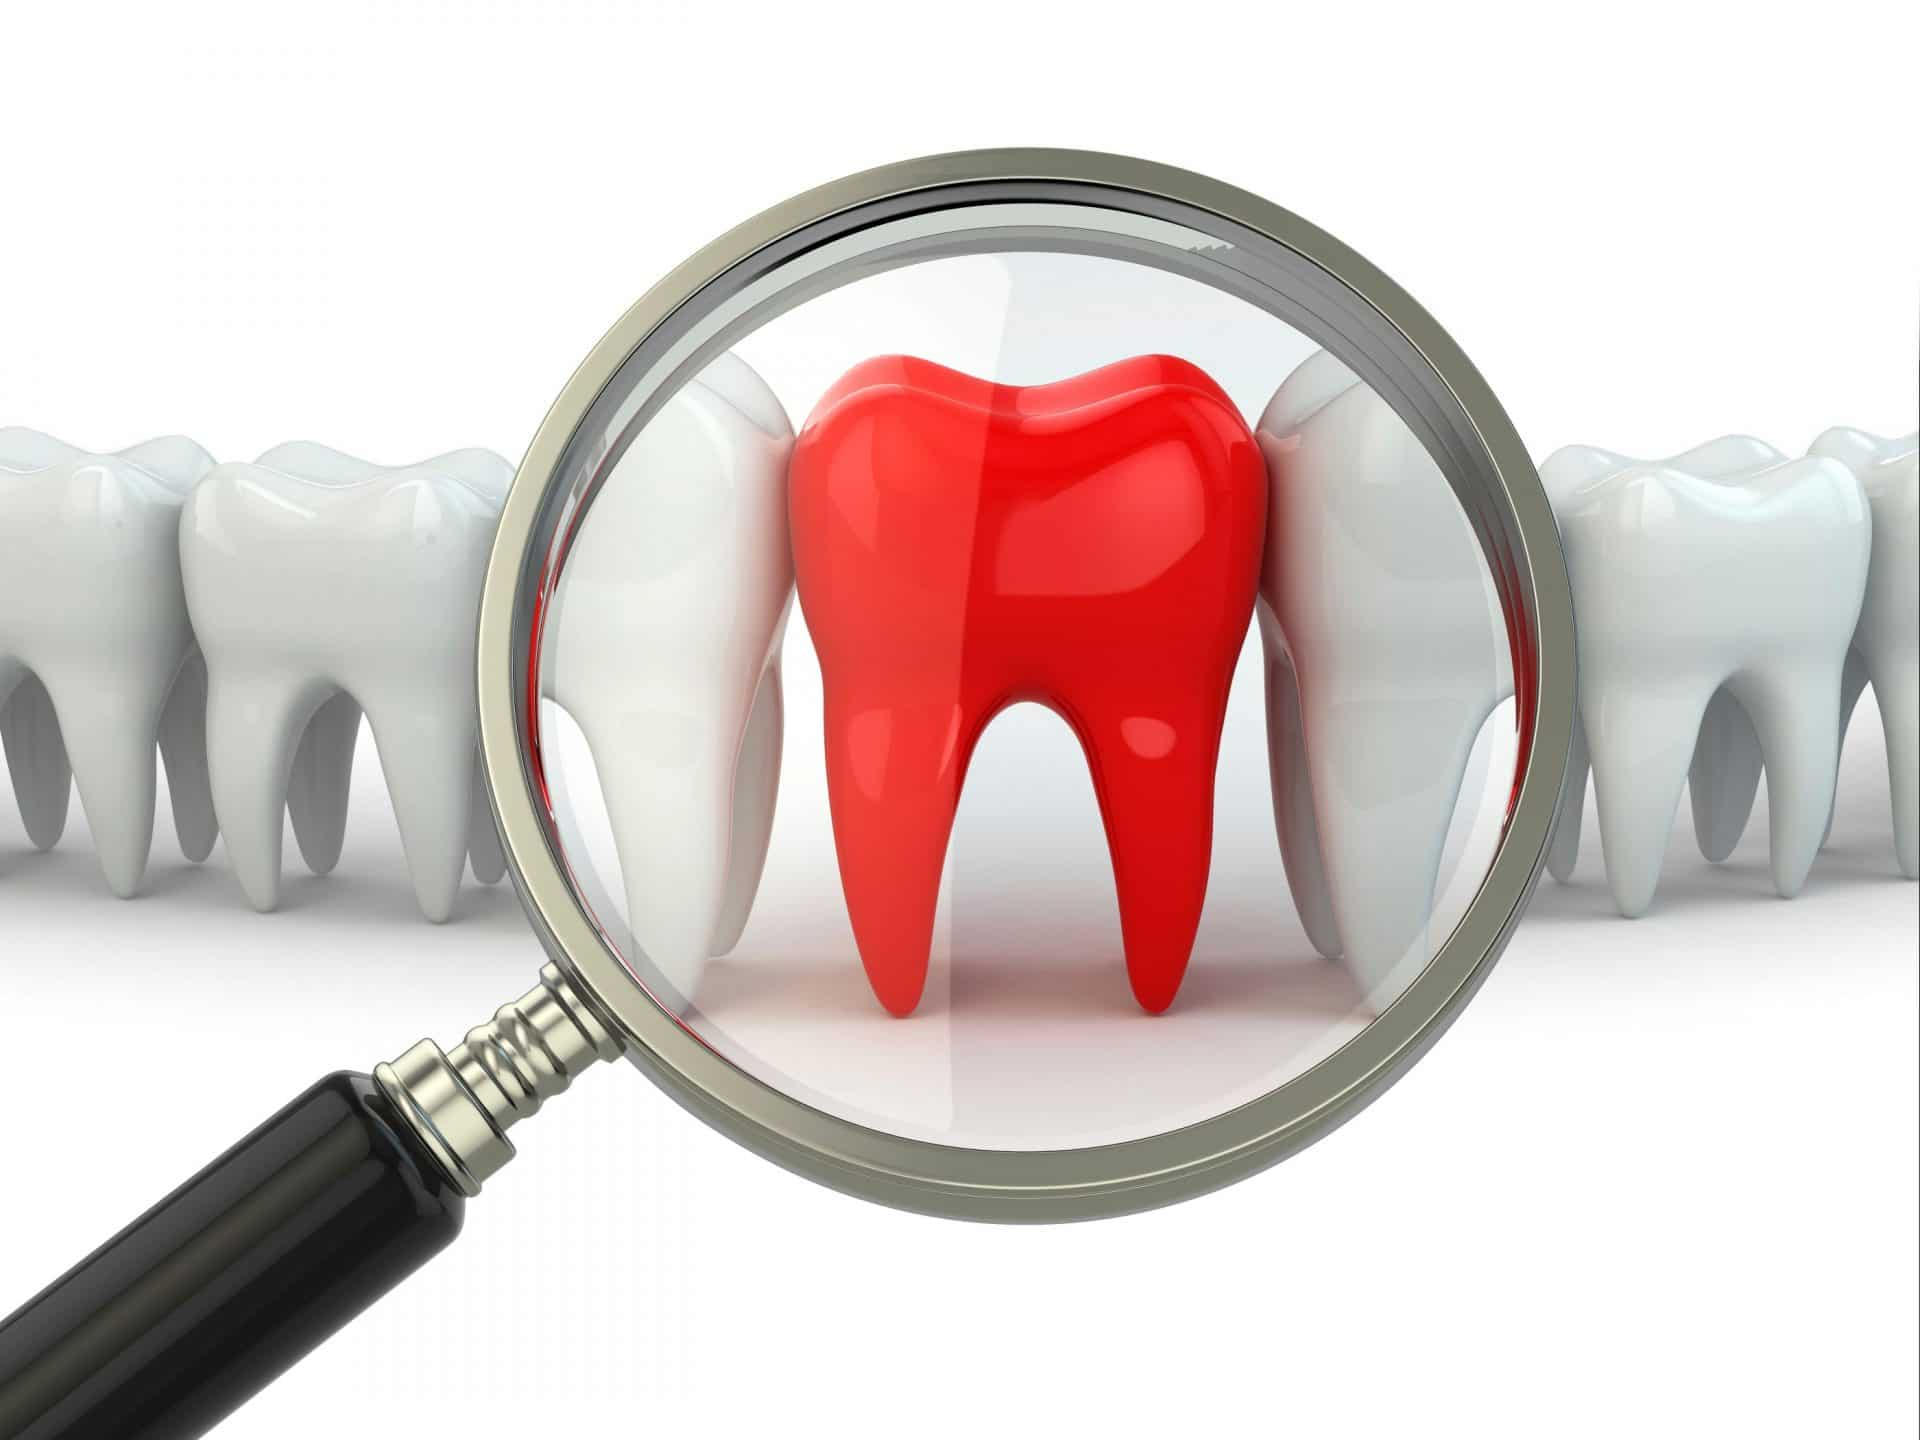 Wisdom tooth removal in St Louis by St Louis South oral surgery